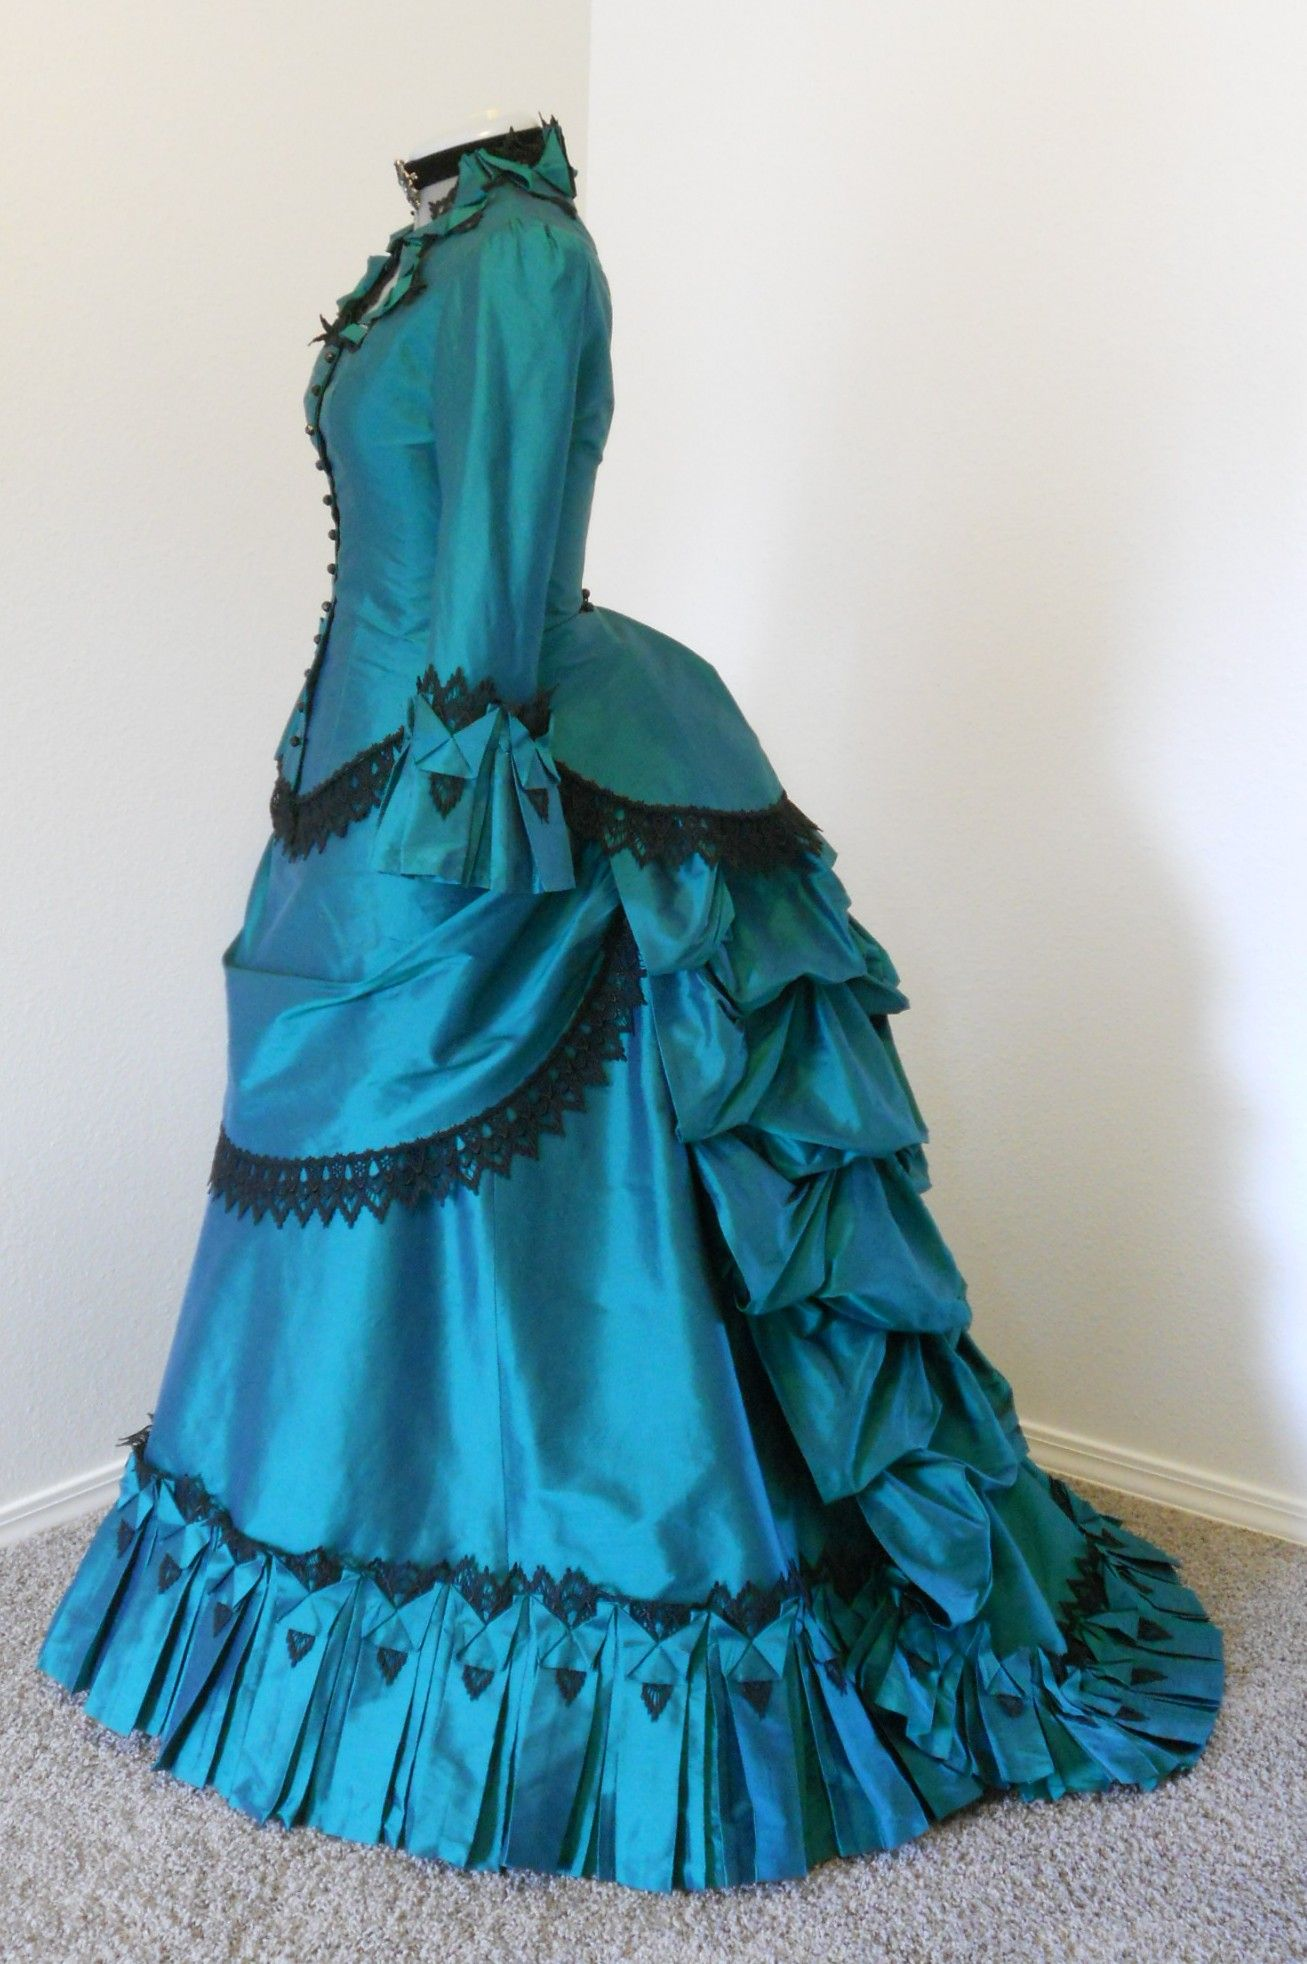 Medium Of Victorian Style Dresses